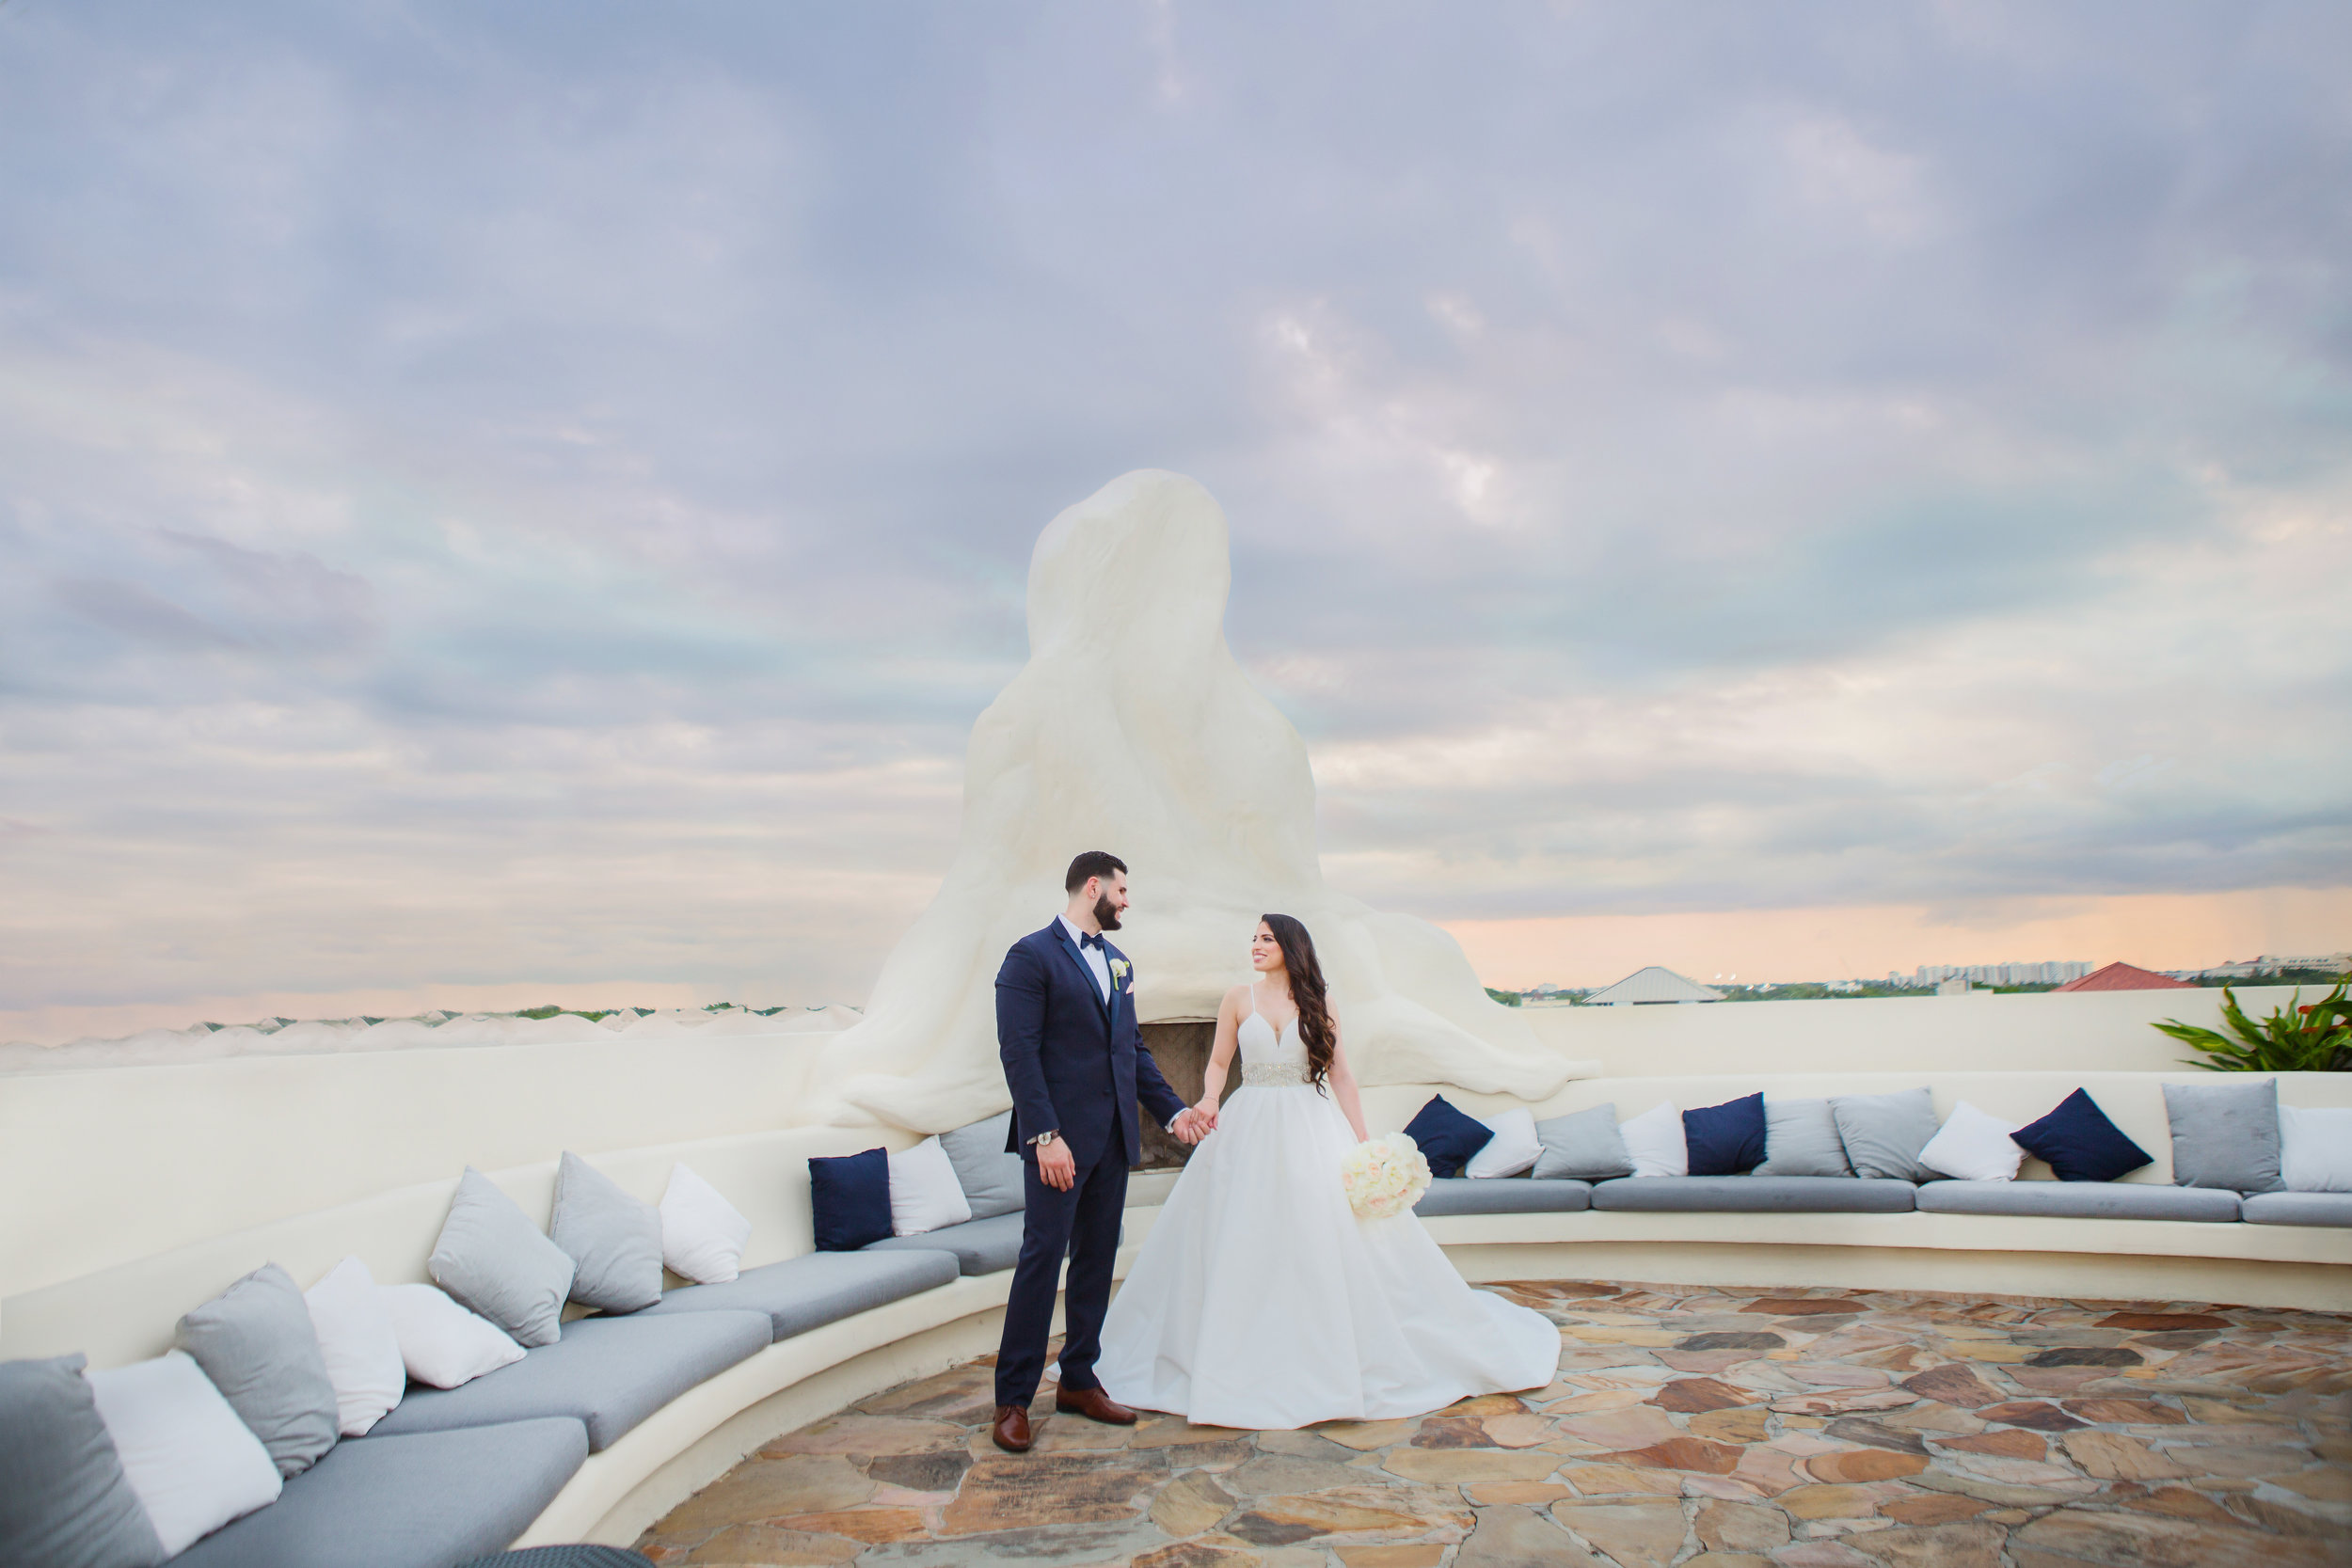 Wedding at The Wayfair Hotel in Miami